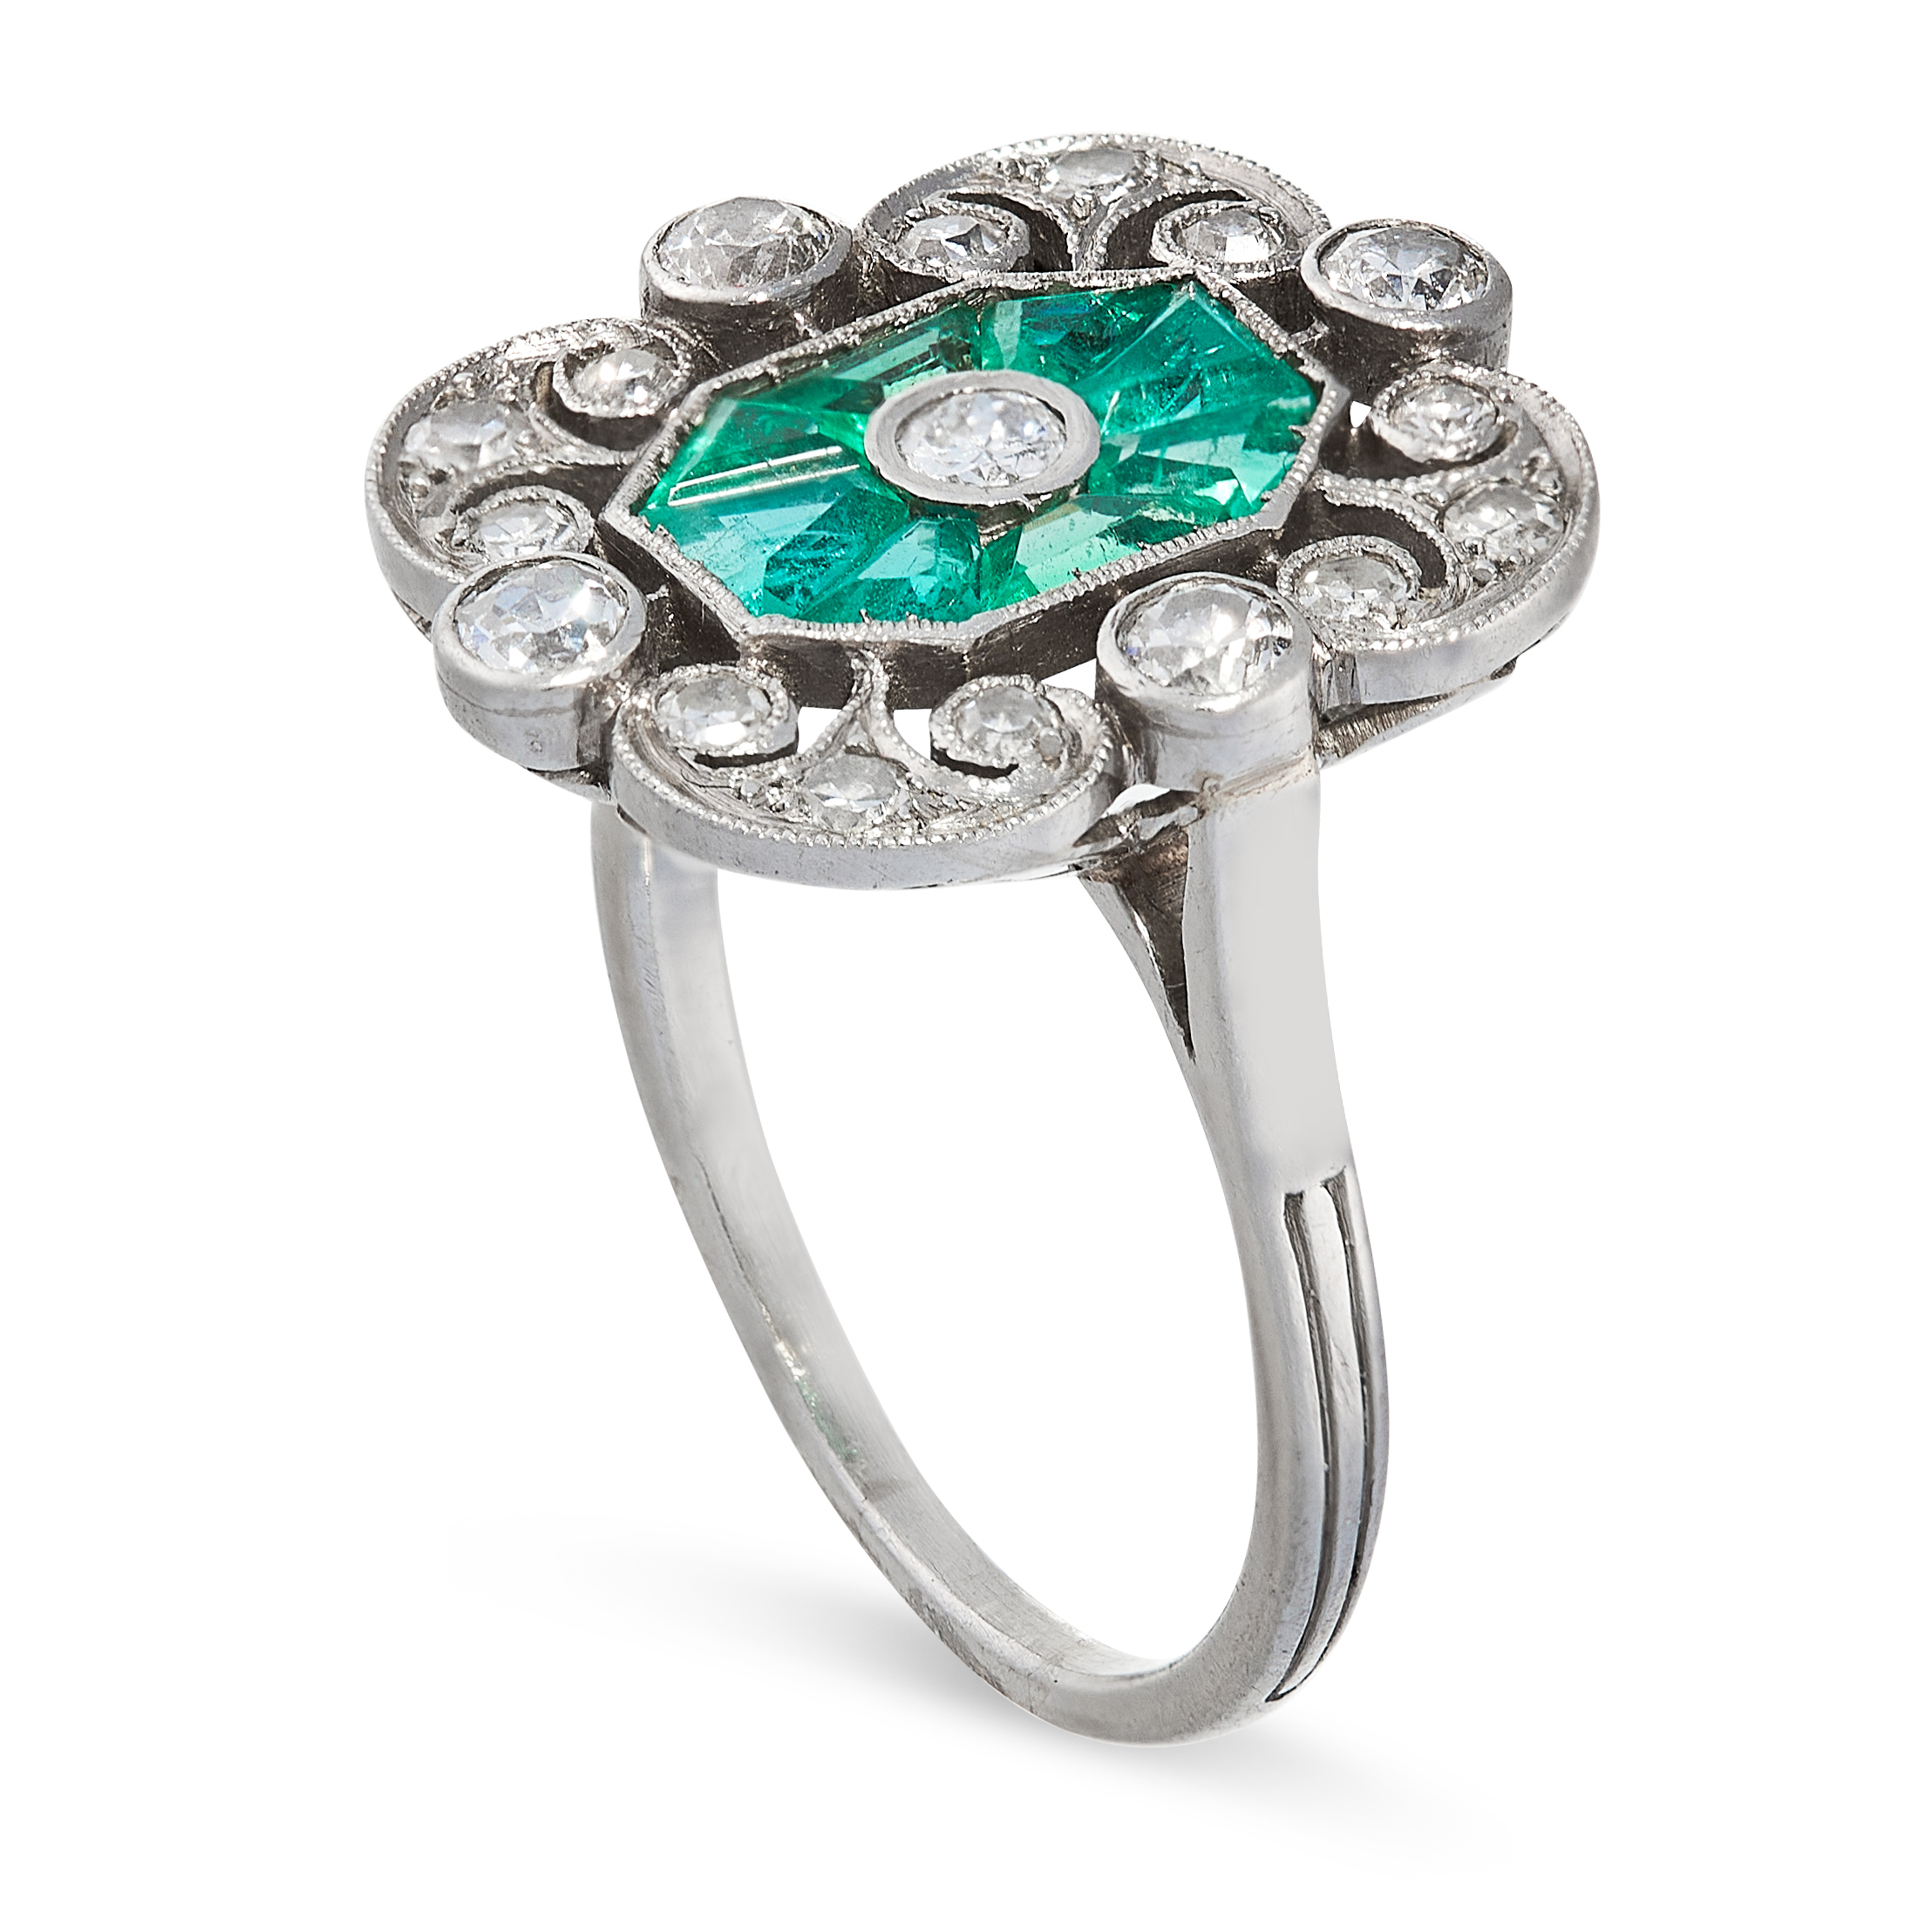 AN EMERALD AND DIAMOND RING in platinum, set with an old cut diamond within an octagonal border of - Image 2 of 2